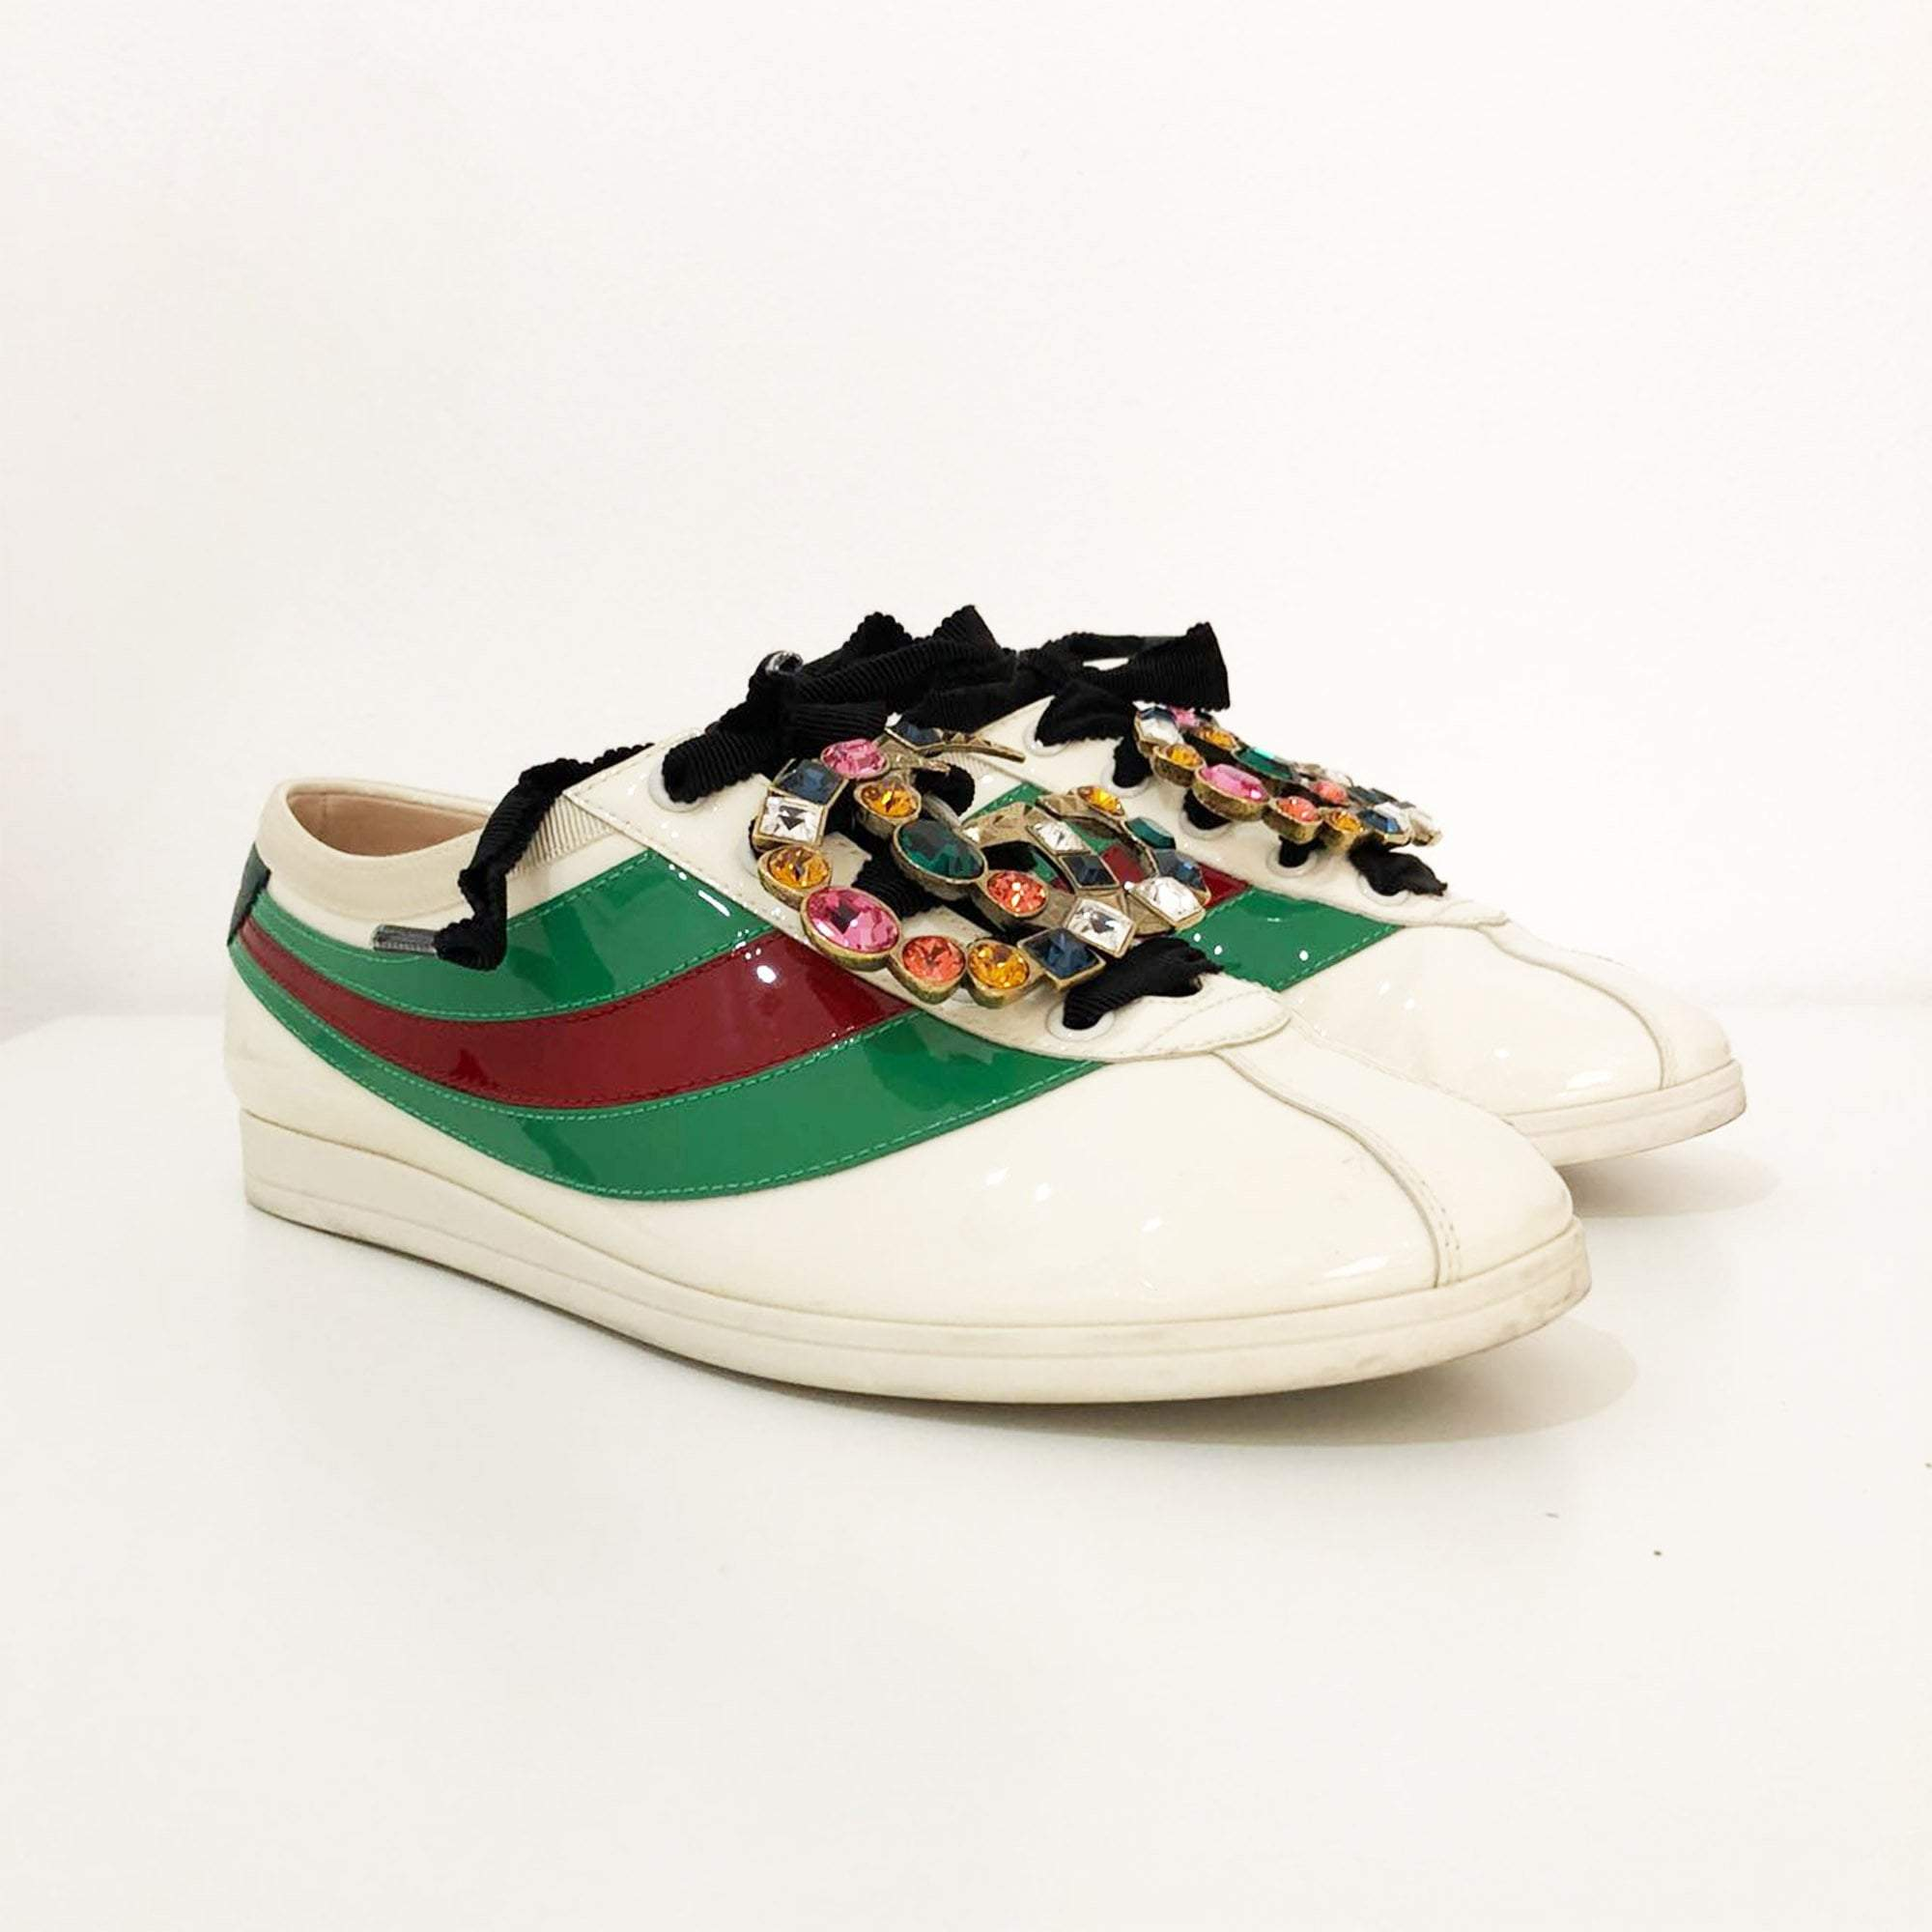 6627a71a34a Gucci Falacer Patent Leather Sneaker with Web – Garderobe